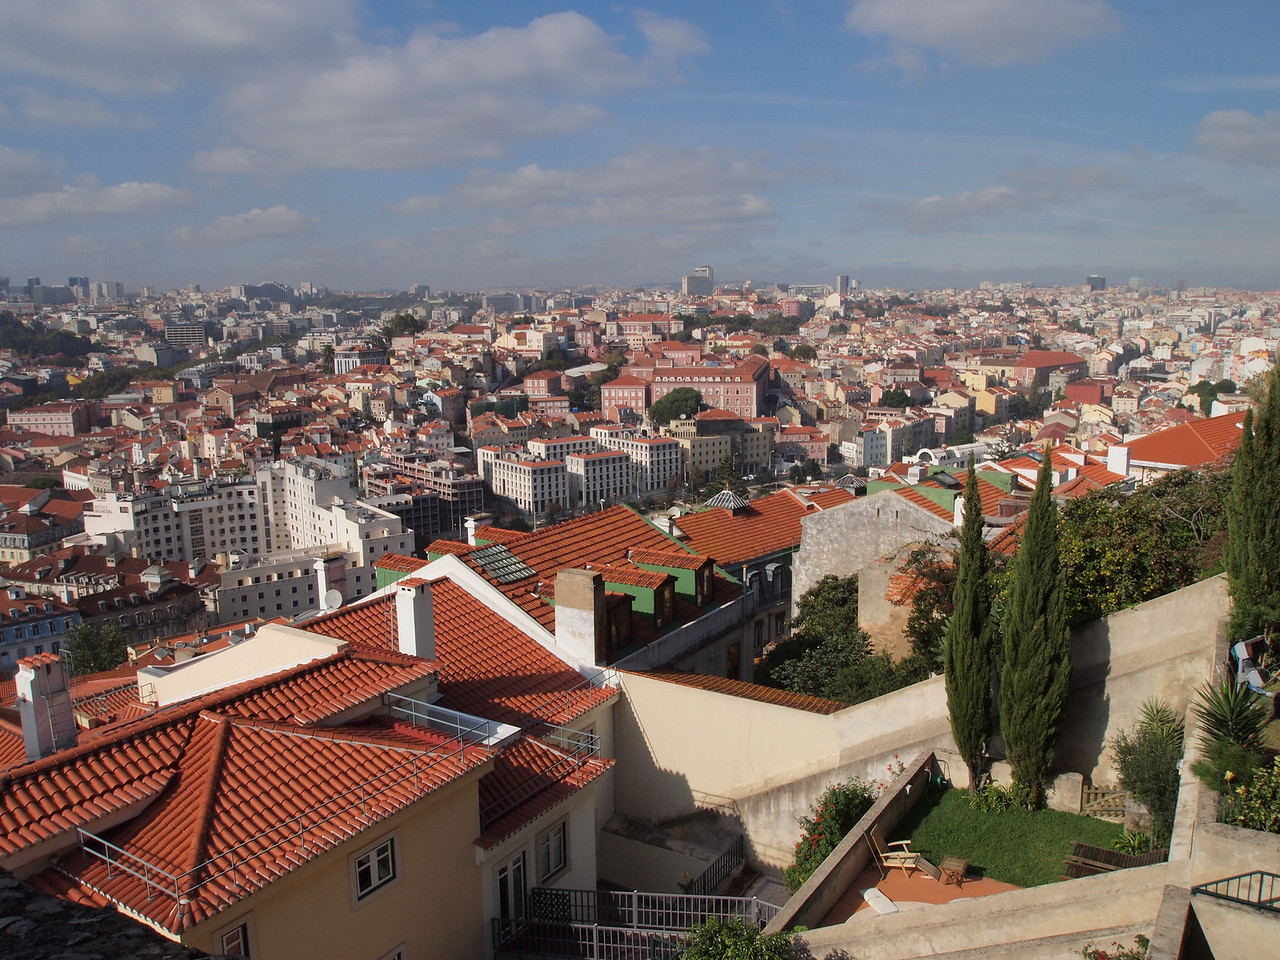 View from Castle Sao Jorge - Lisbon, Portugal